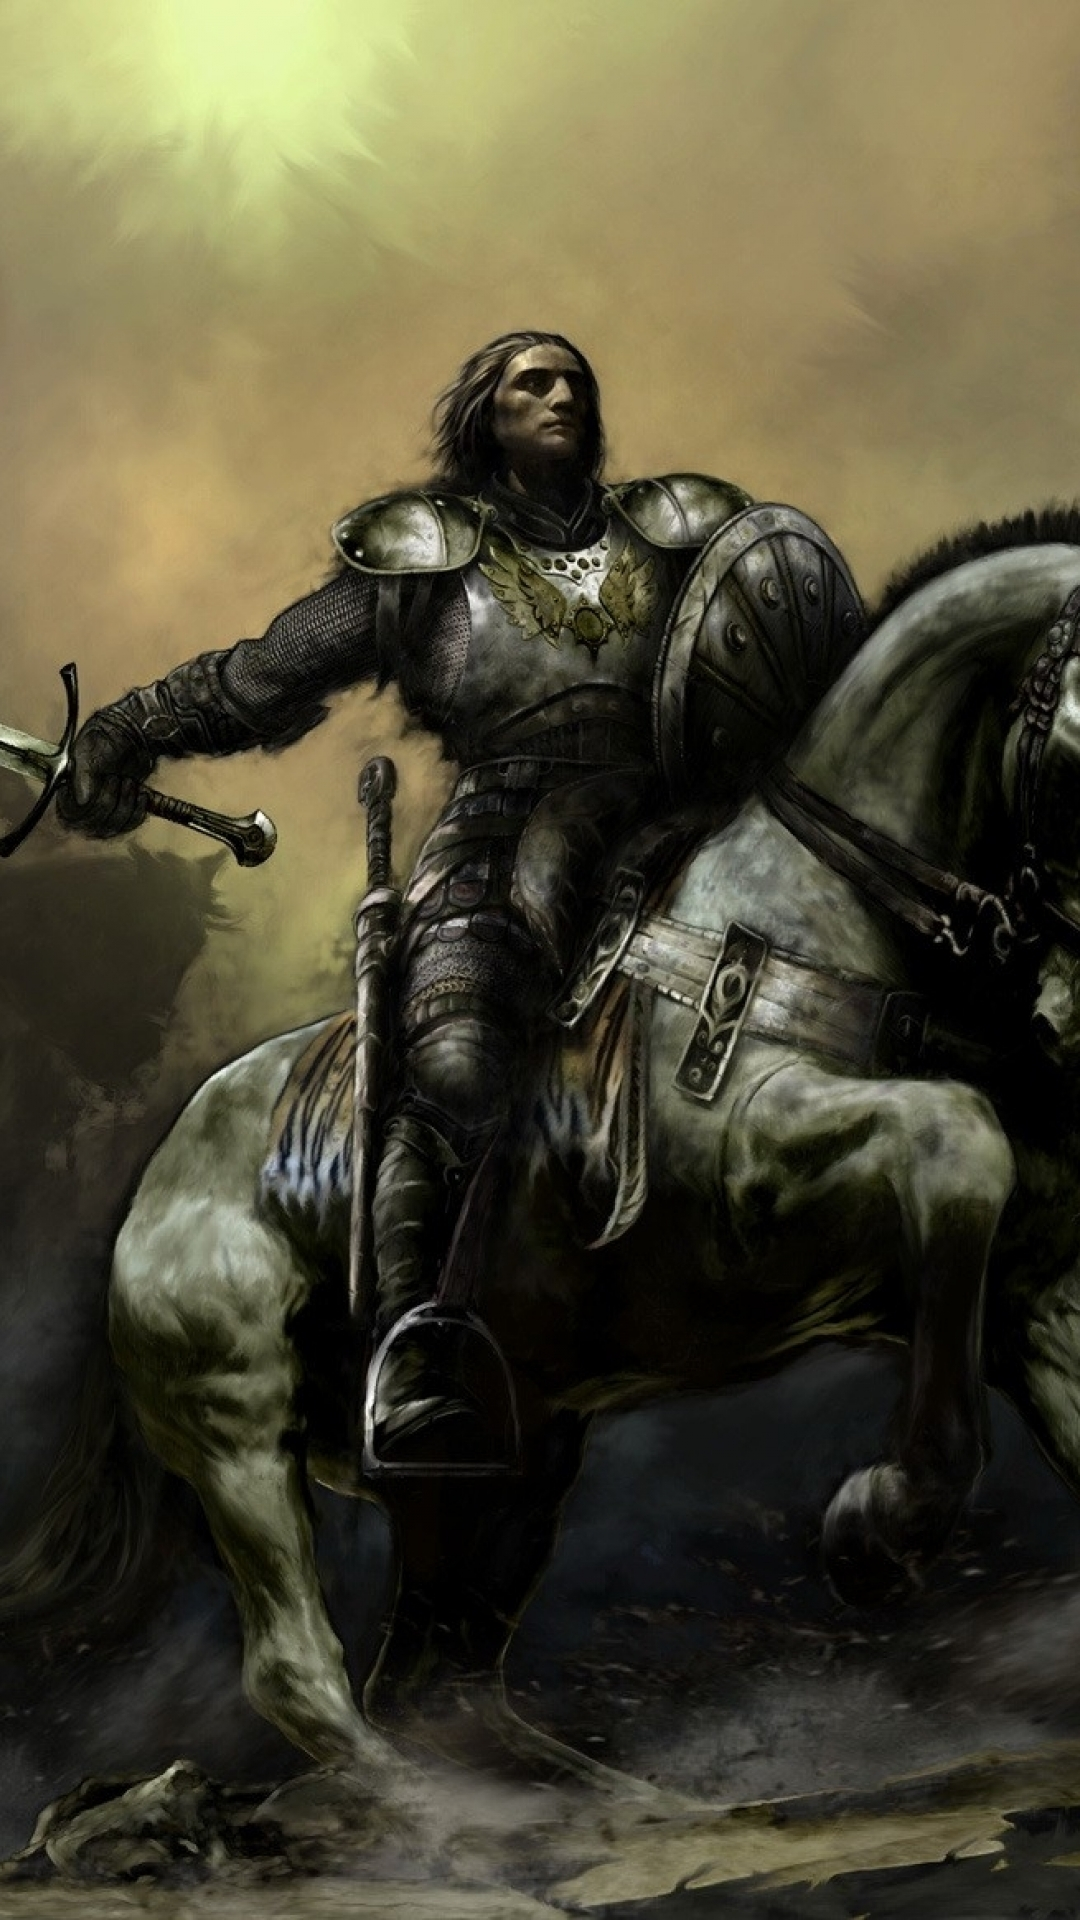 Iphone wallpaper cool - Fantasy Knight Images Amp Pictures Becuo